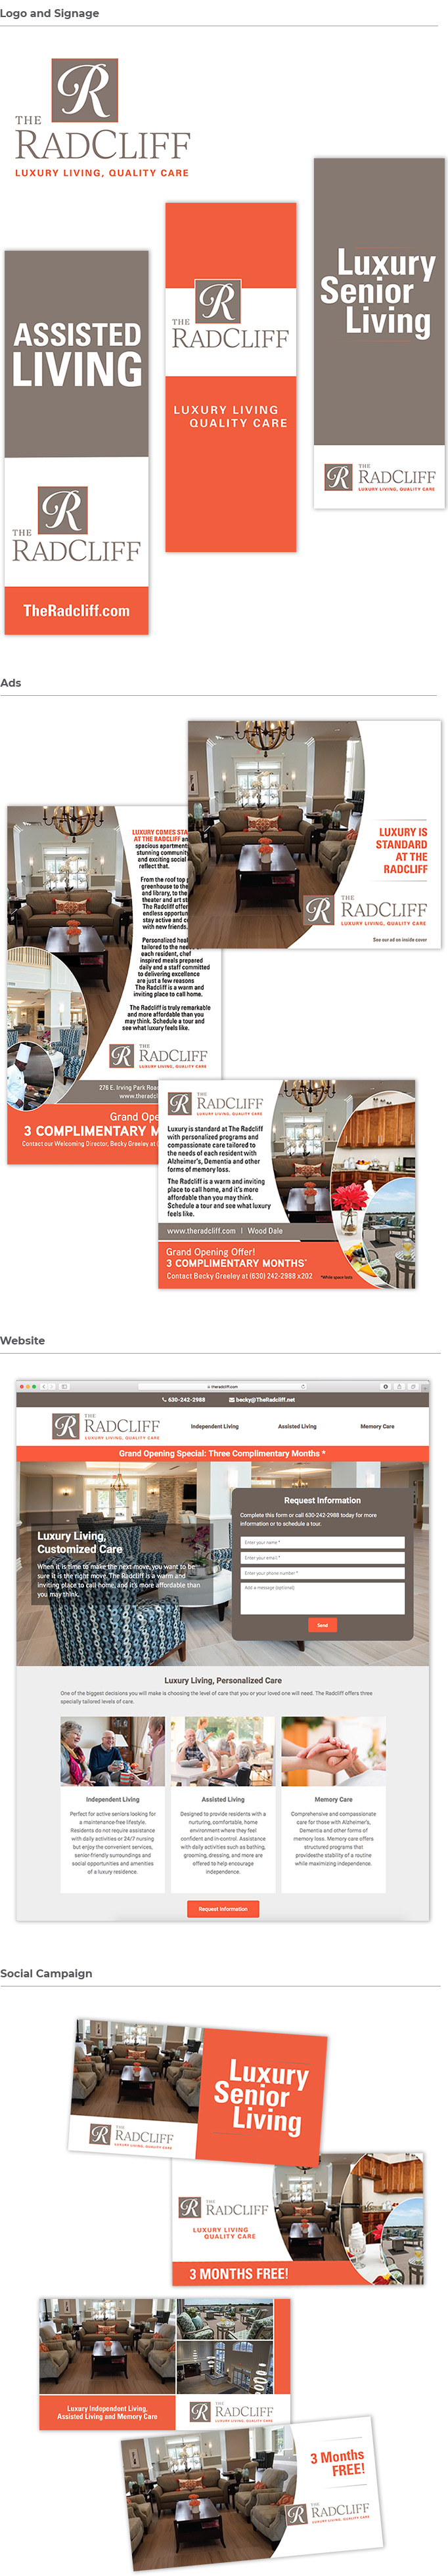 McCarthy Communications - The Radcliff